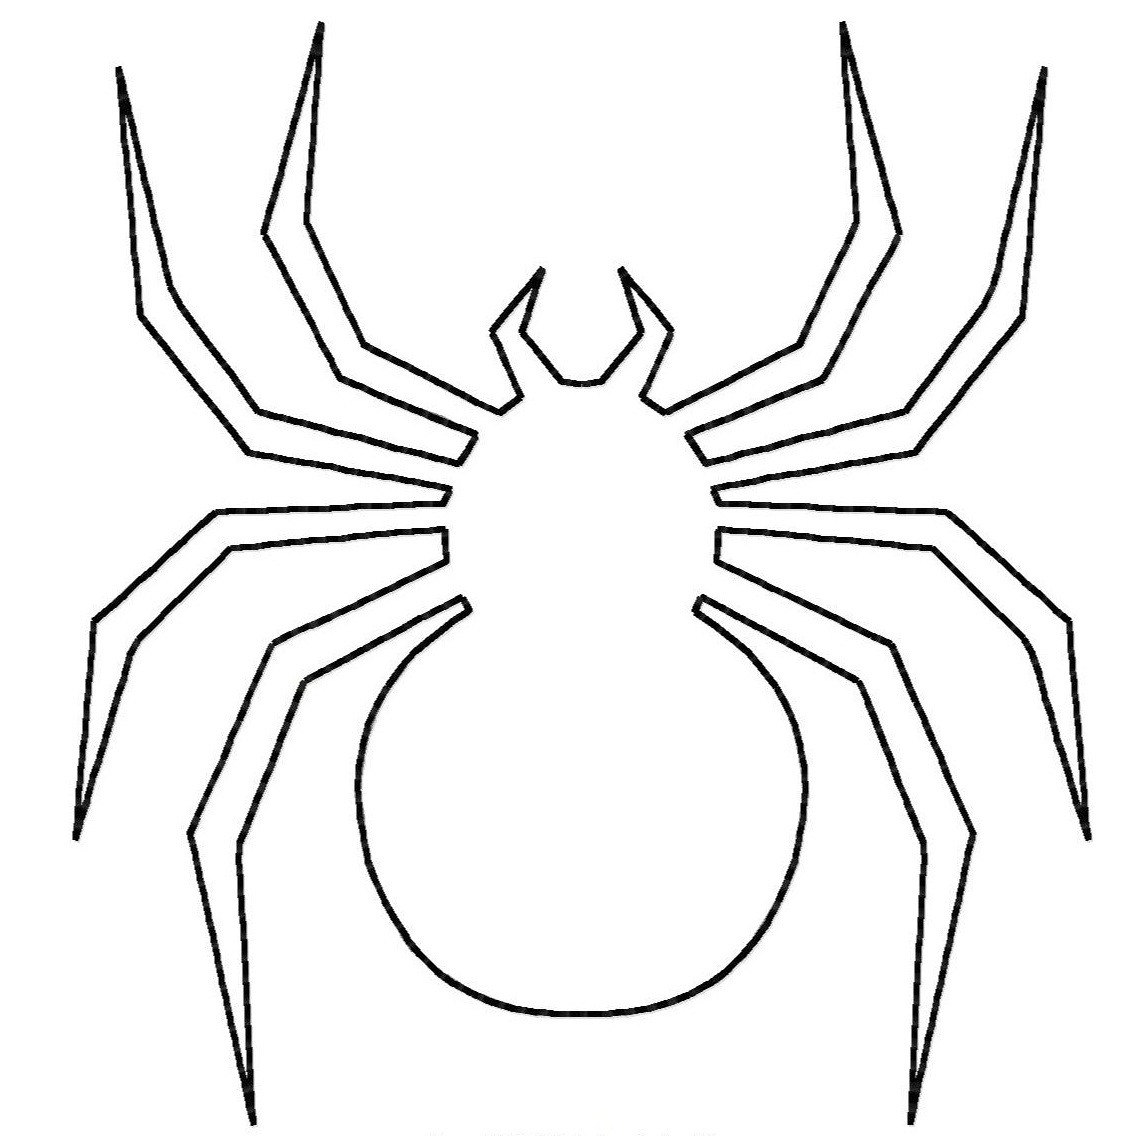 tarantula coloring pages spider coloring pages to download and print for free coloring tarantula pages